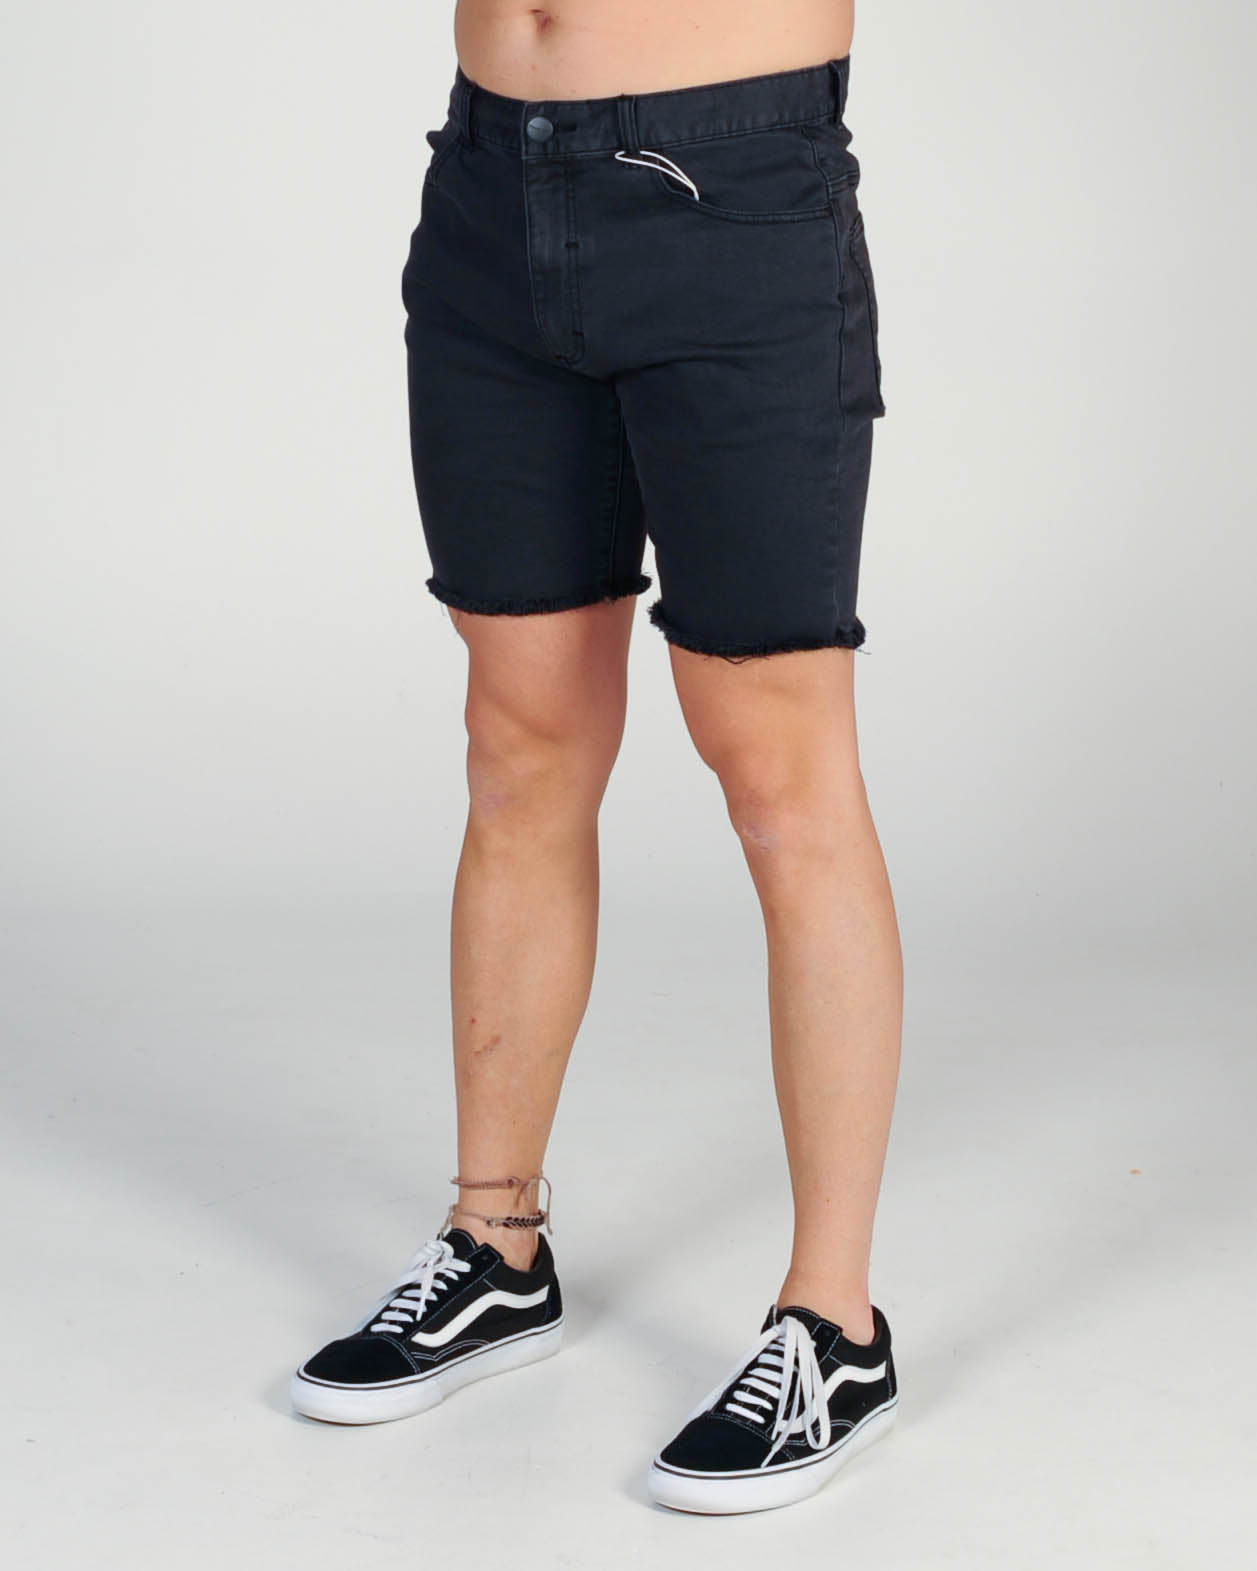 Nena & Pasadena Savage Casual Short - Freedom Black